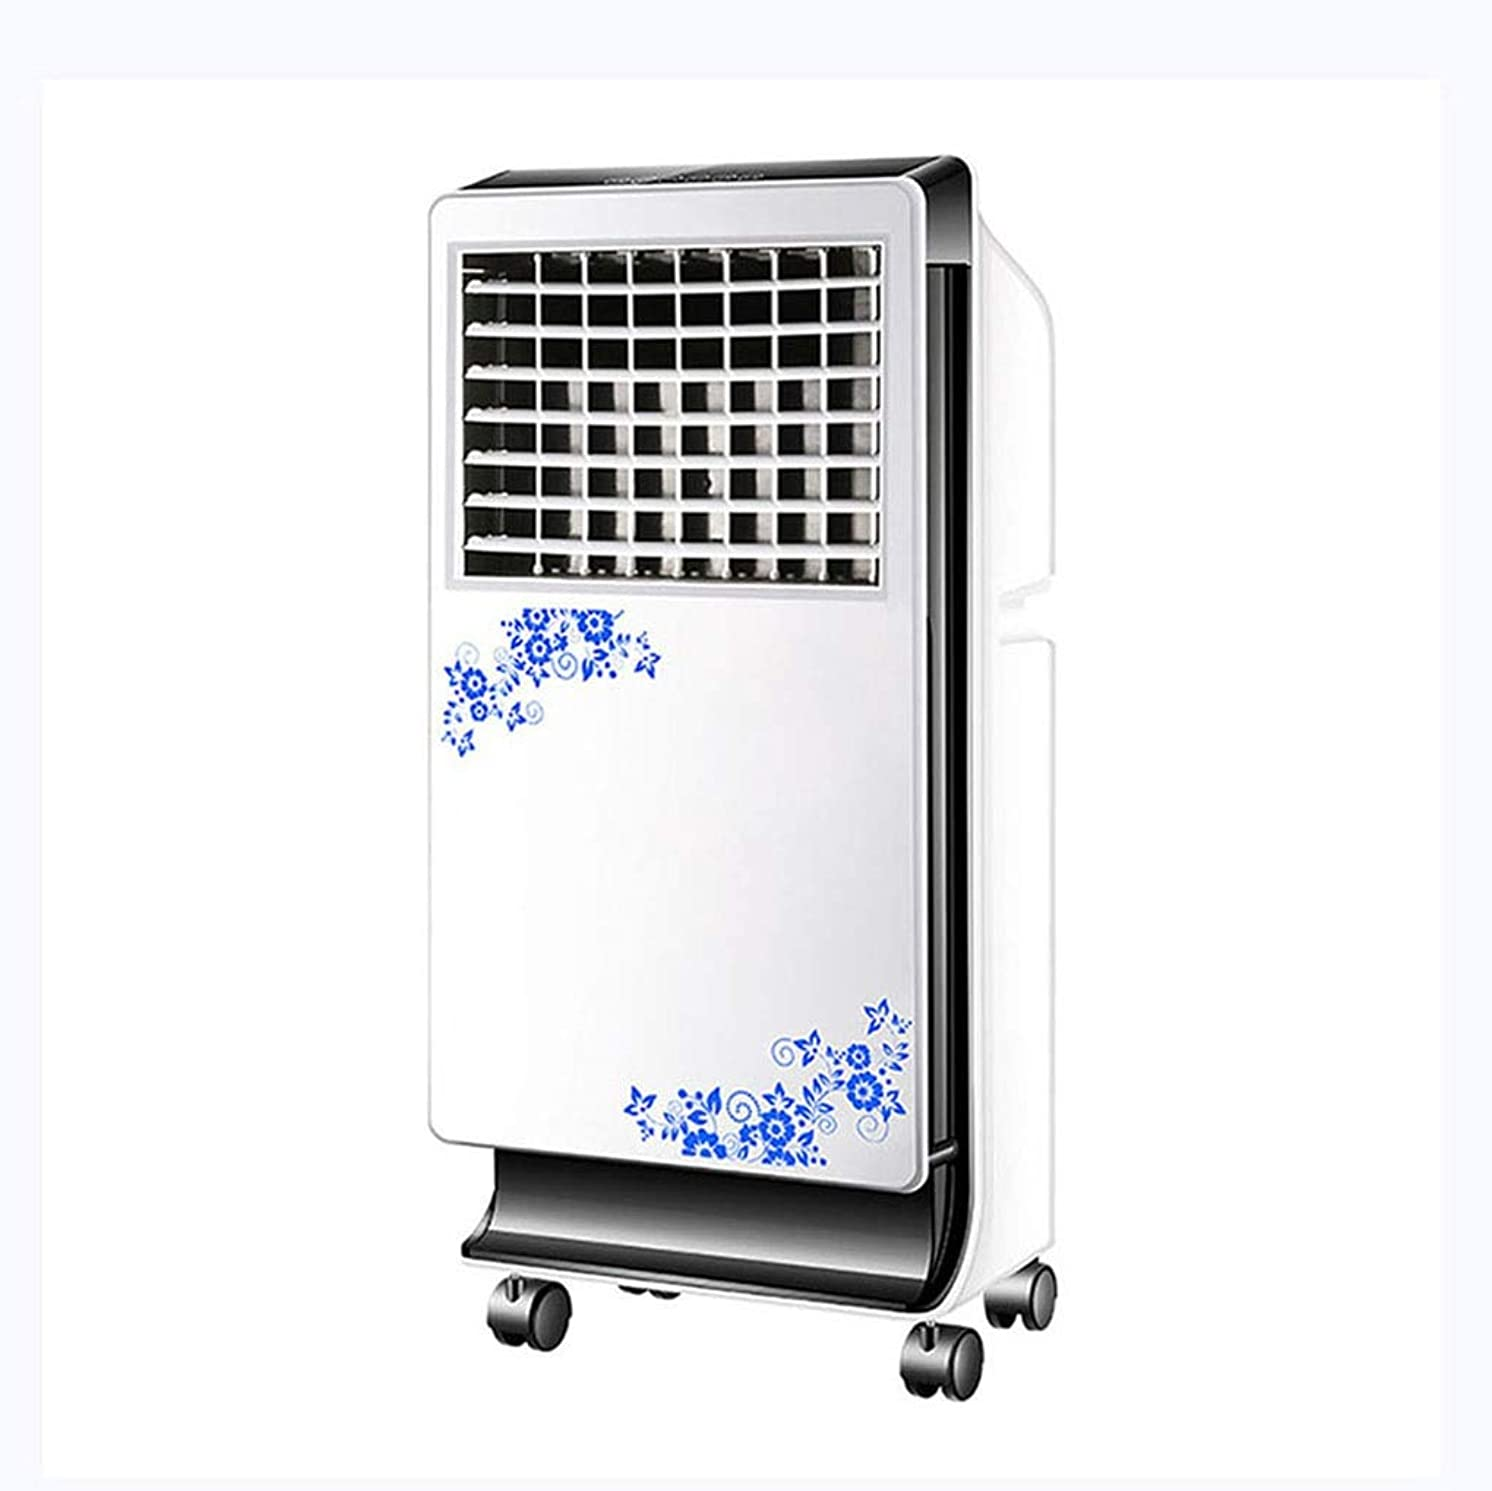 Portable Ac Window Evaporative Air Conditioner Small Standing Cooling Fan Air Conditioner Fan Personal Space Quiet Energy Efficient Air Cooler Air Humidifier Purifier Remote ControlTime Settings